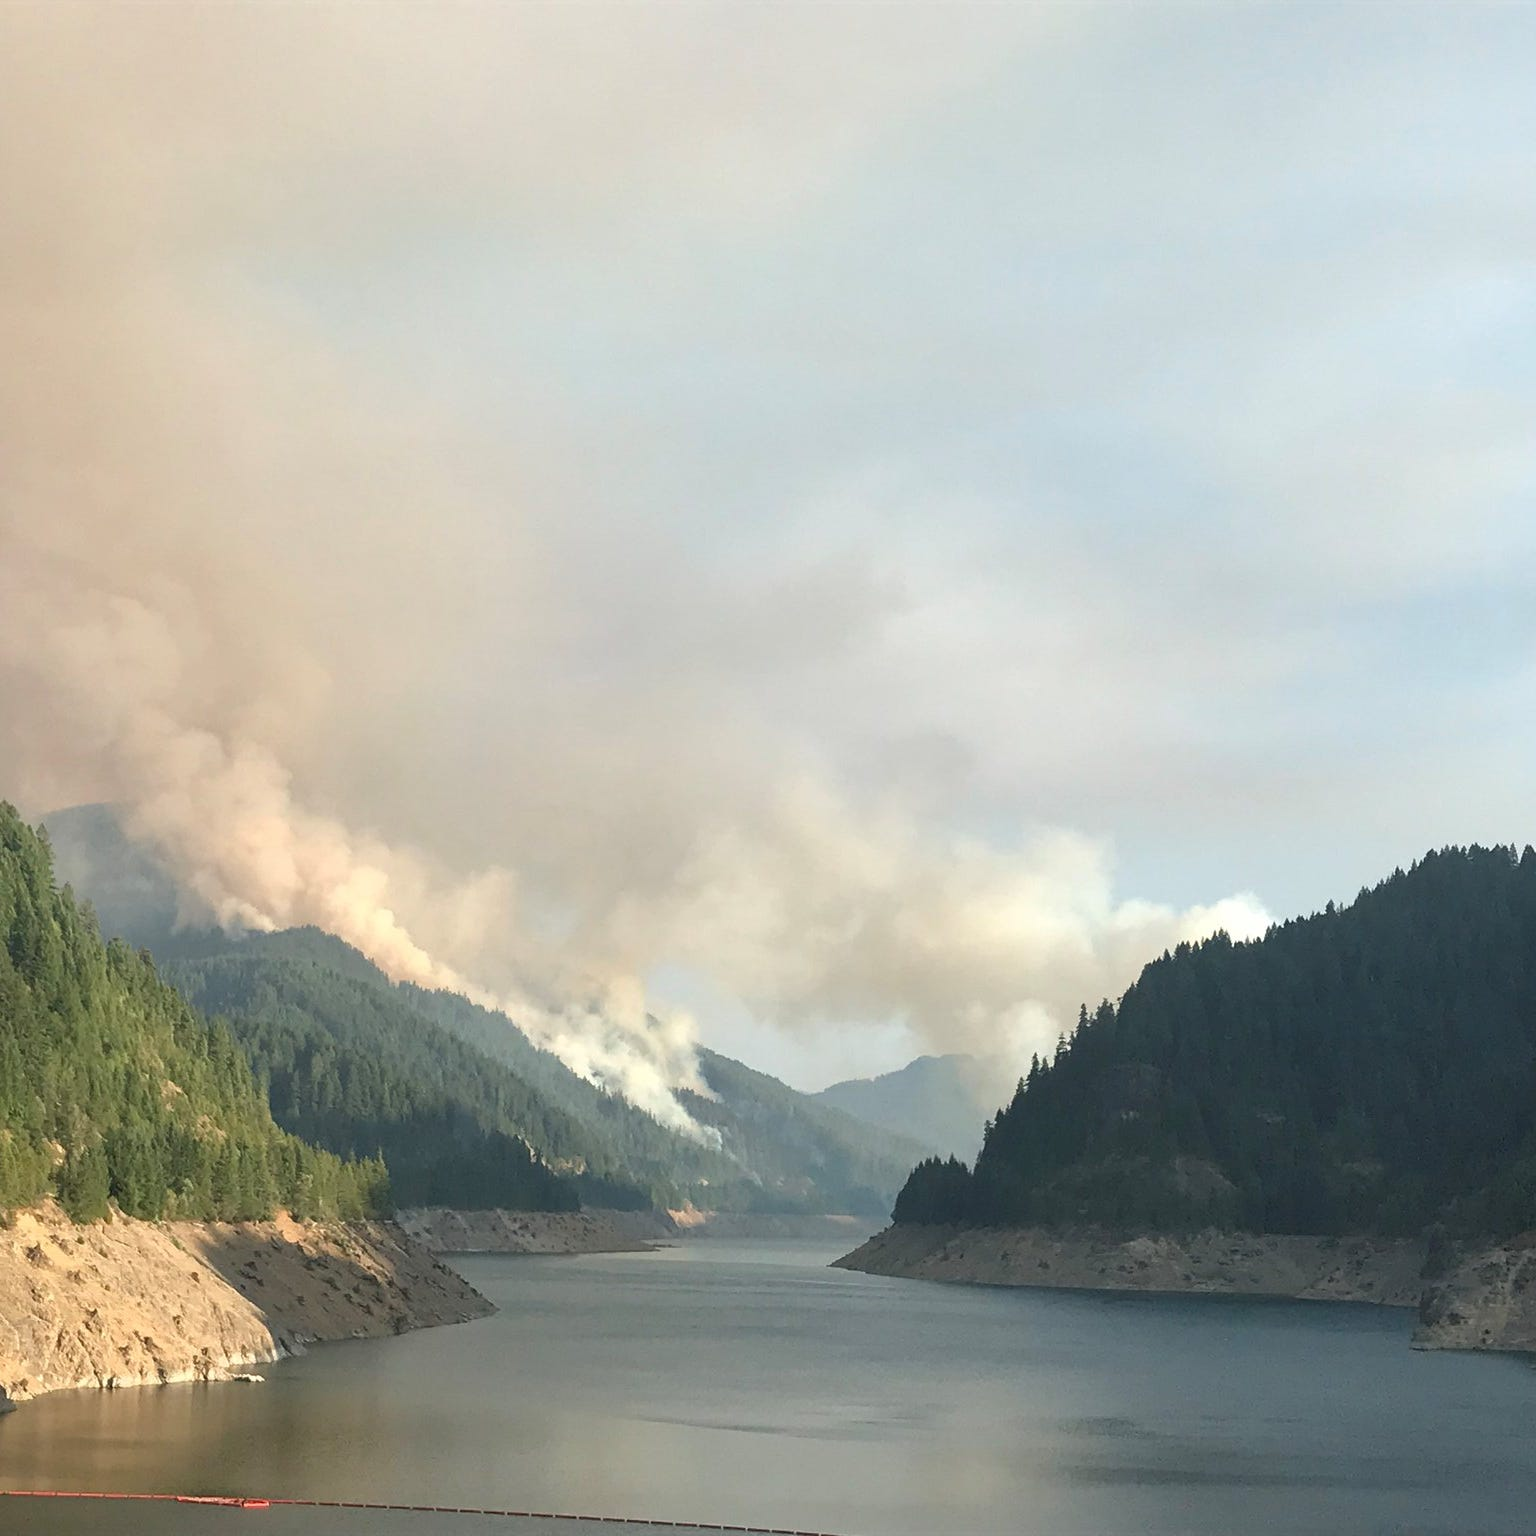 Fast-growing wildfire near Terwilliger Hot Springs roars to 110 acres, visitors barely escape inferno